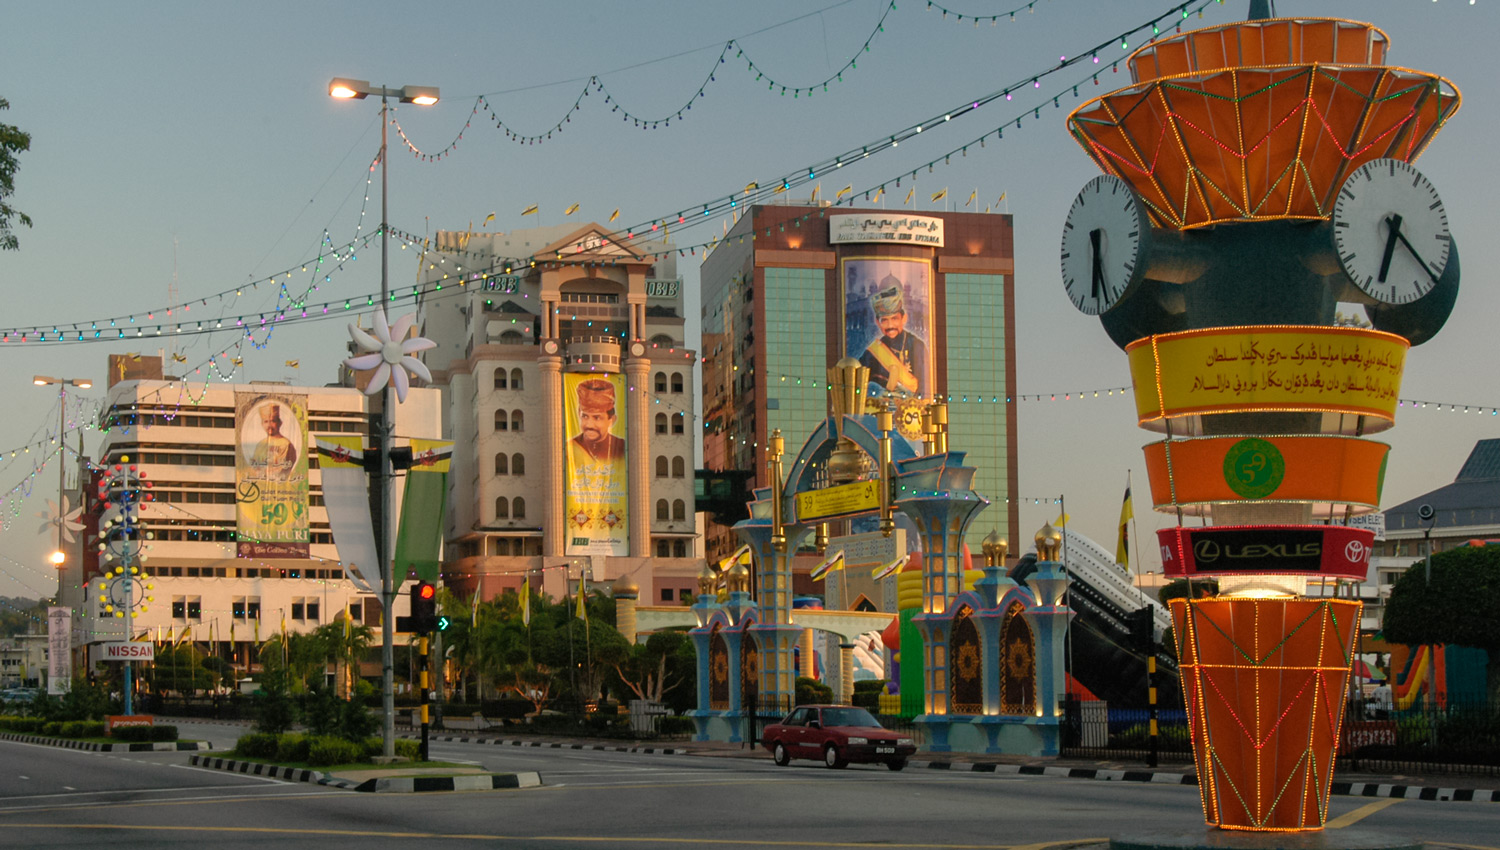 Buildings in downtown BSB displaying posters of the ruling sultan. Image: © David Astley